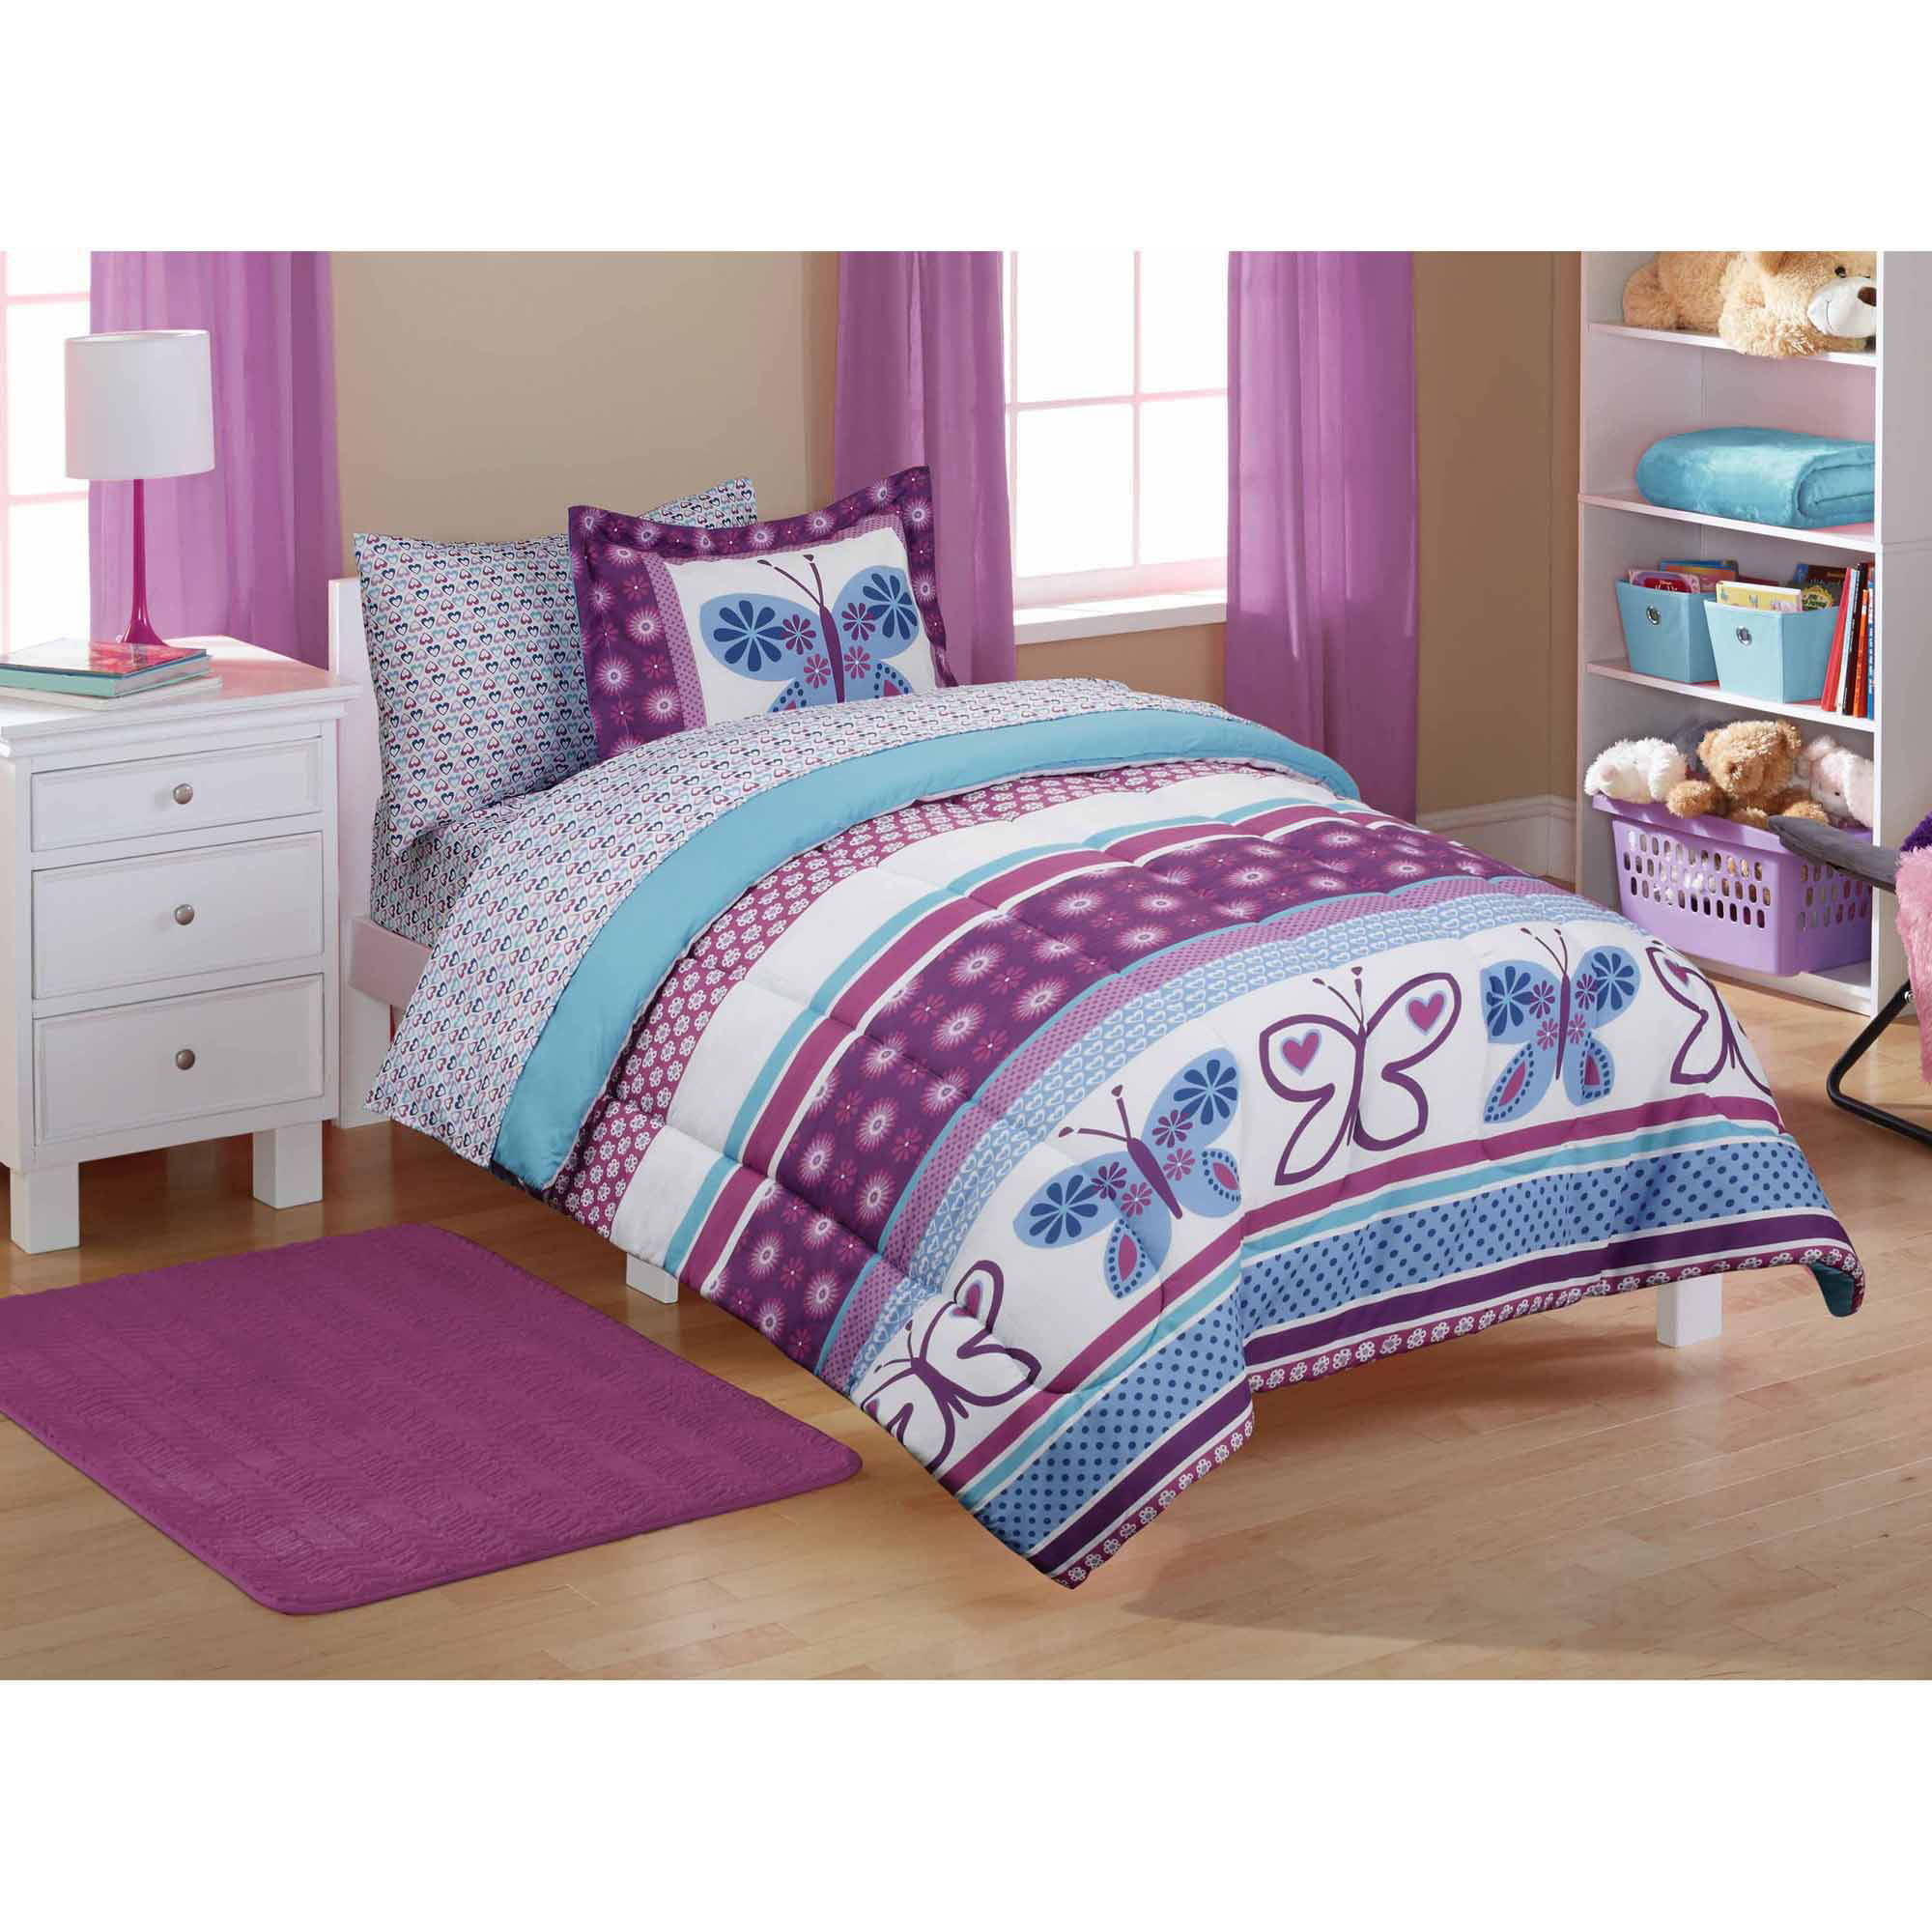 Mainstays kids purple butterfly coordinated bed in a bag